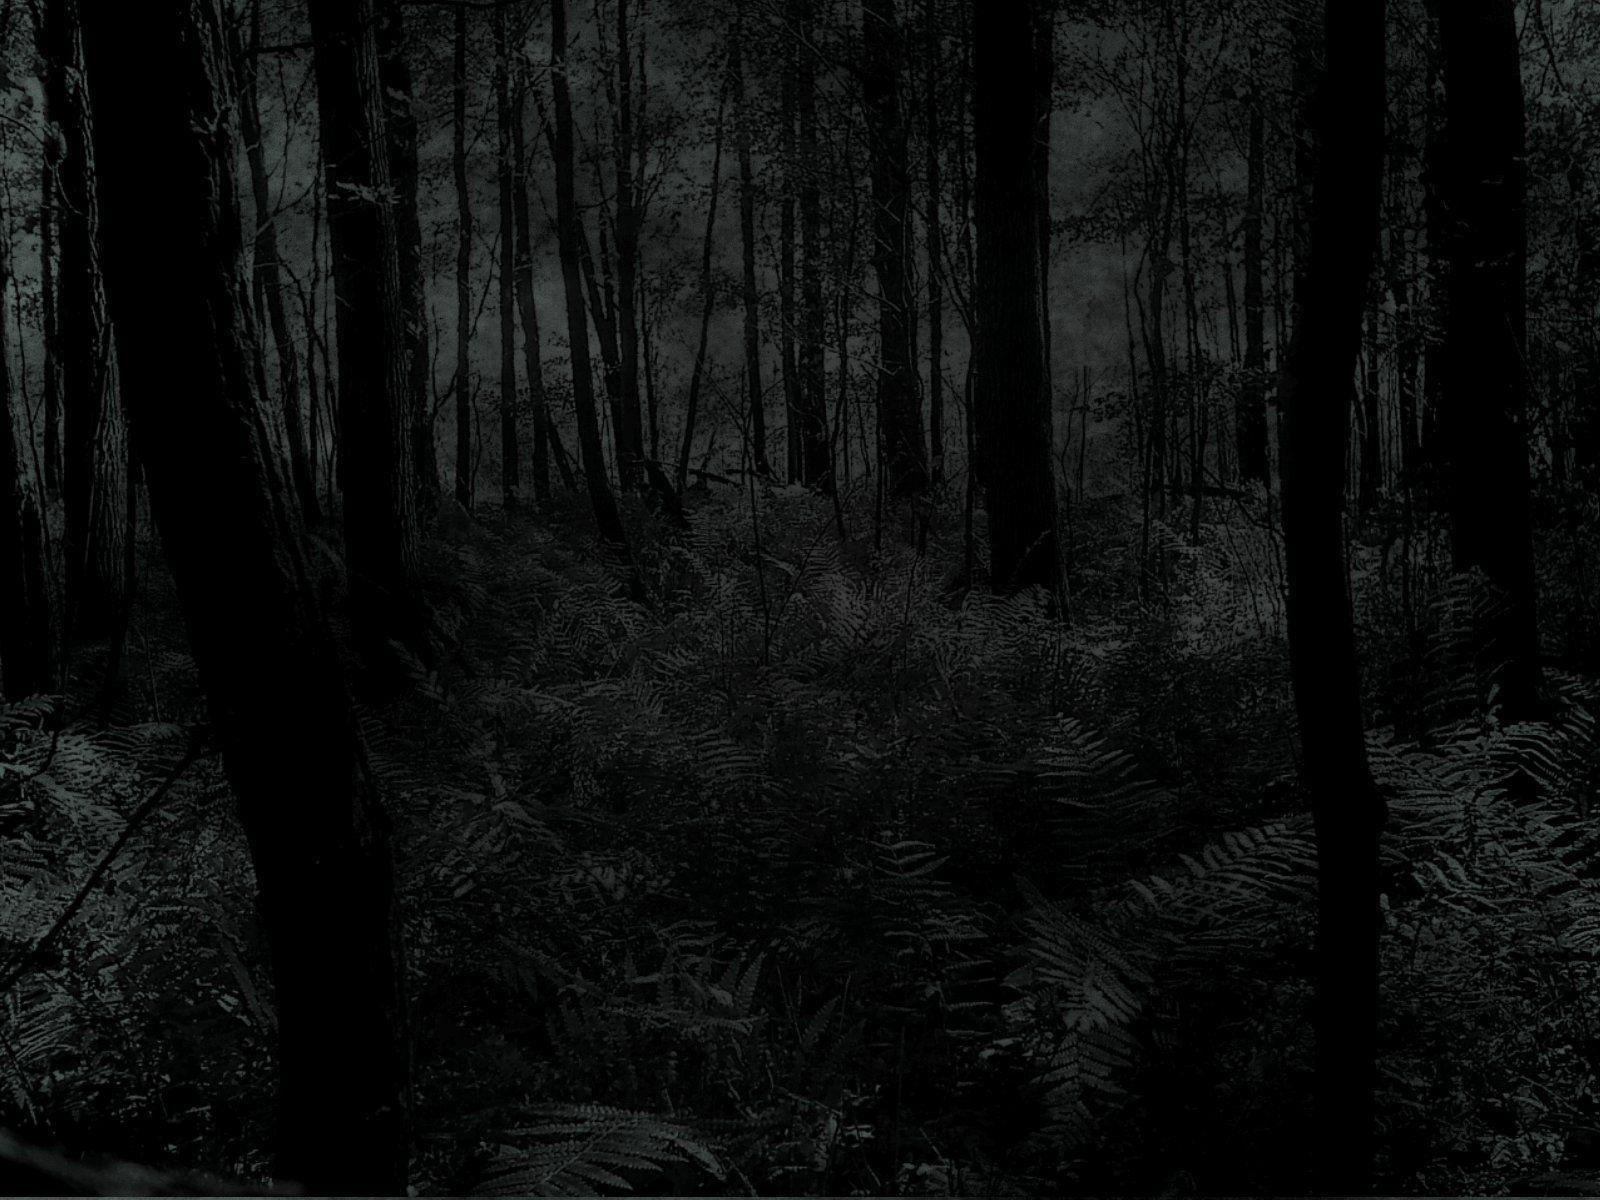 Dark Forest Wallpapers Wallpaper Cave Download 840 dark forest free vectors. dark forest wallpapers wallpaper cave